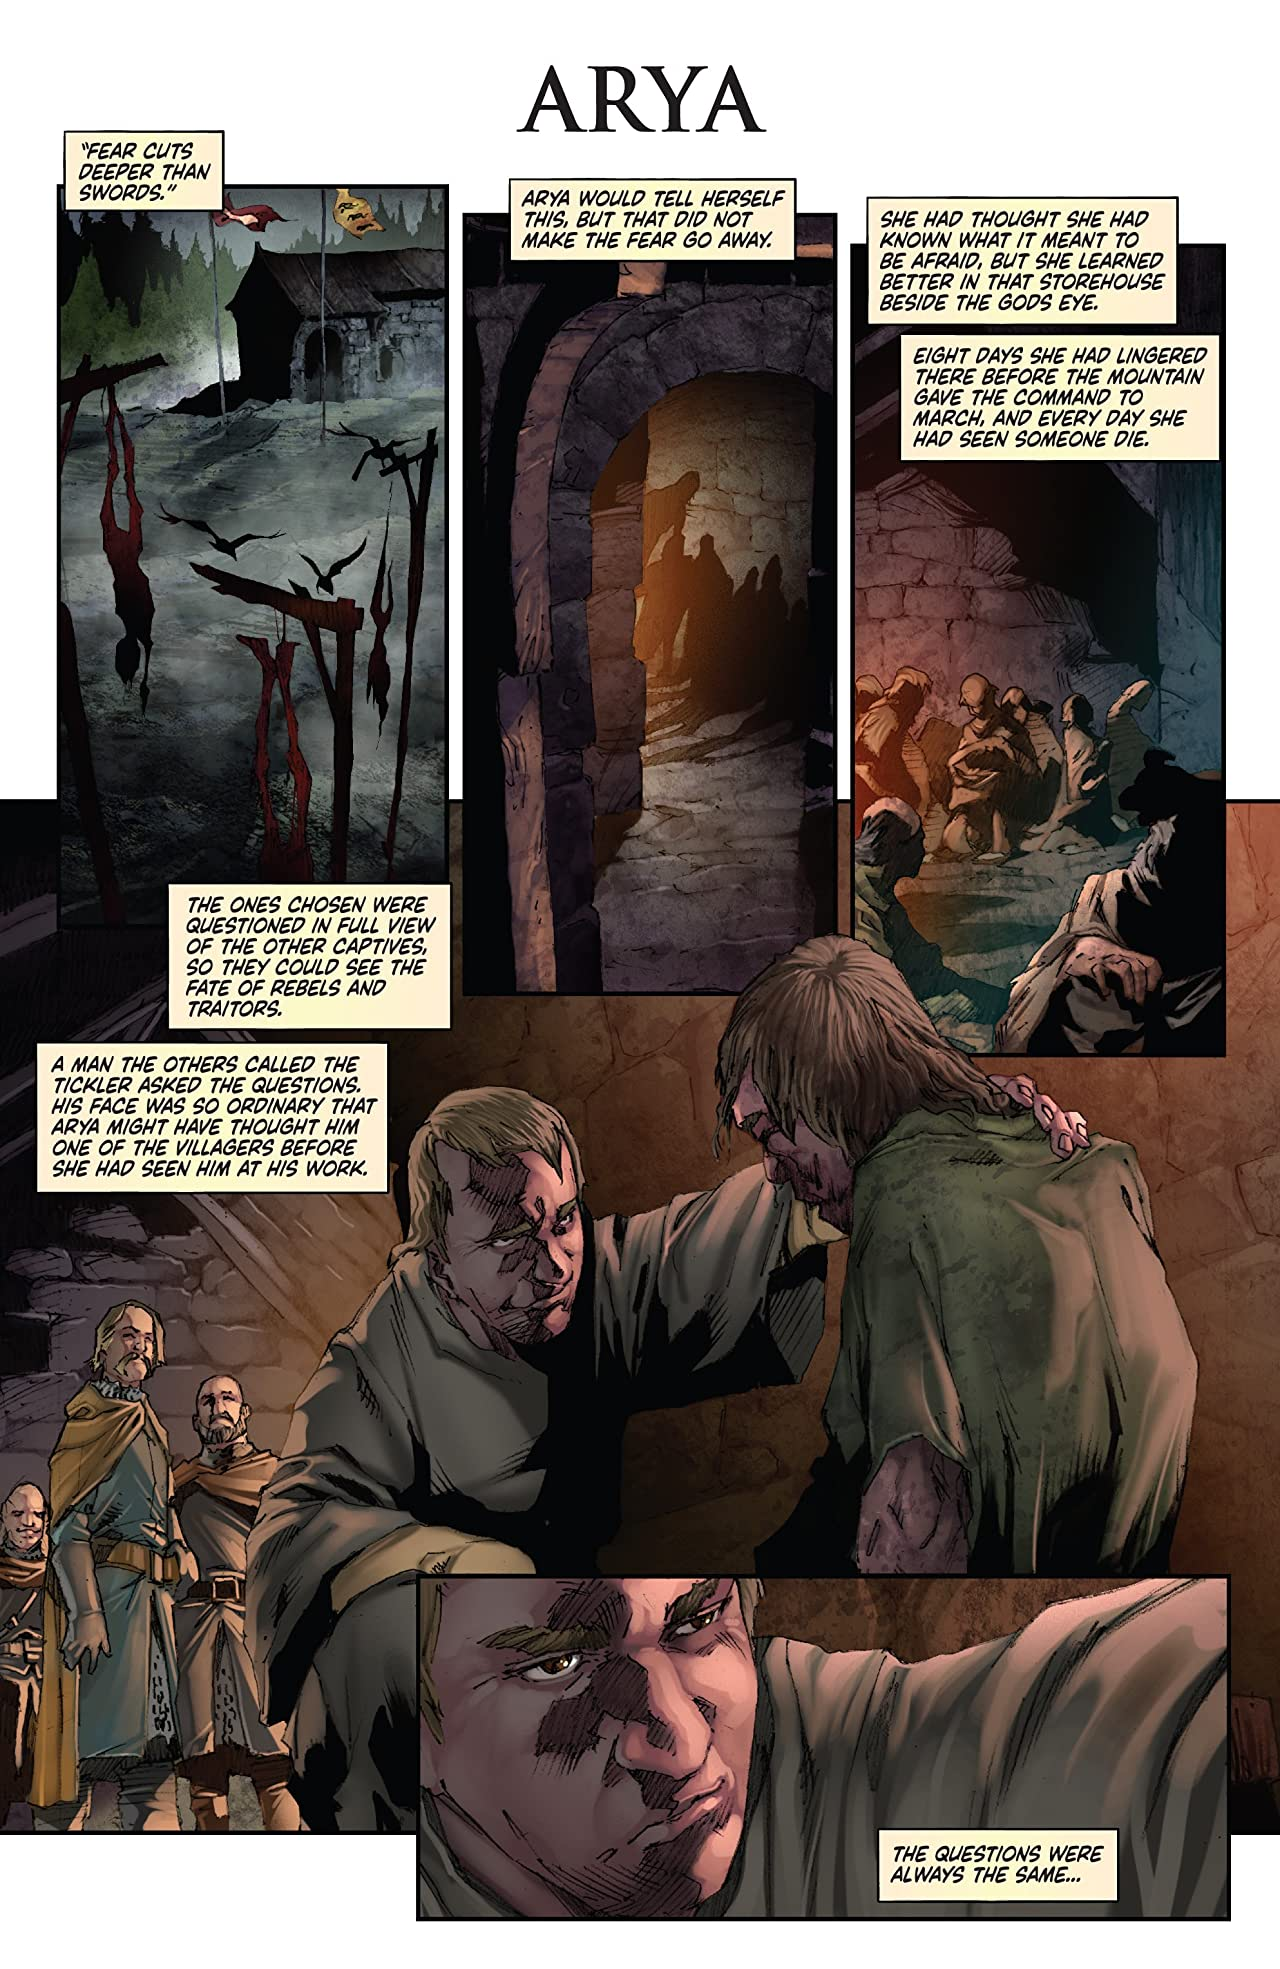 George R.R. Martin's A Clash Of Kings: The Comic Book #14